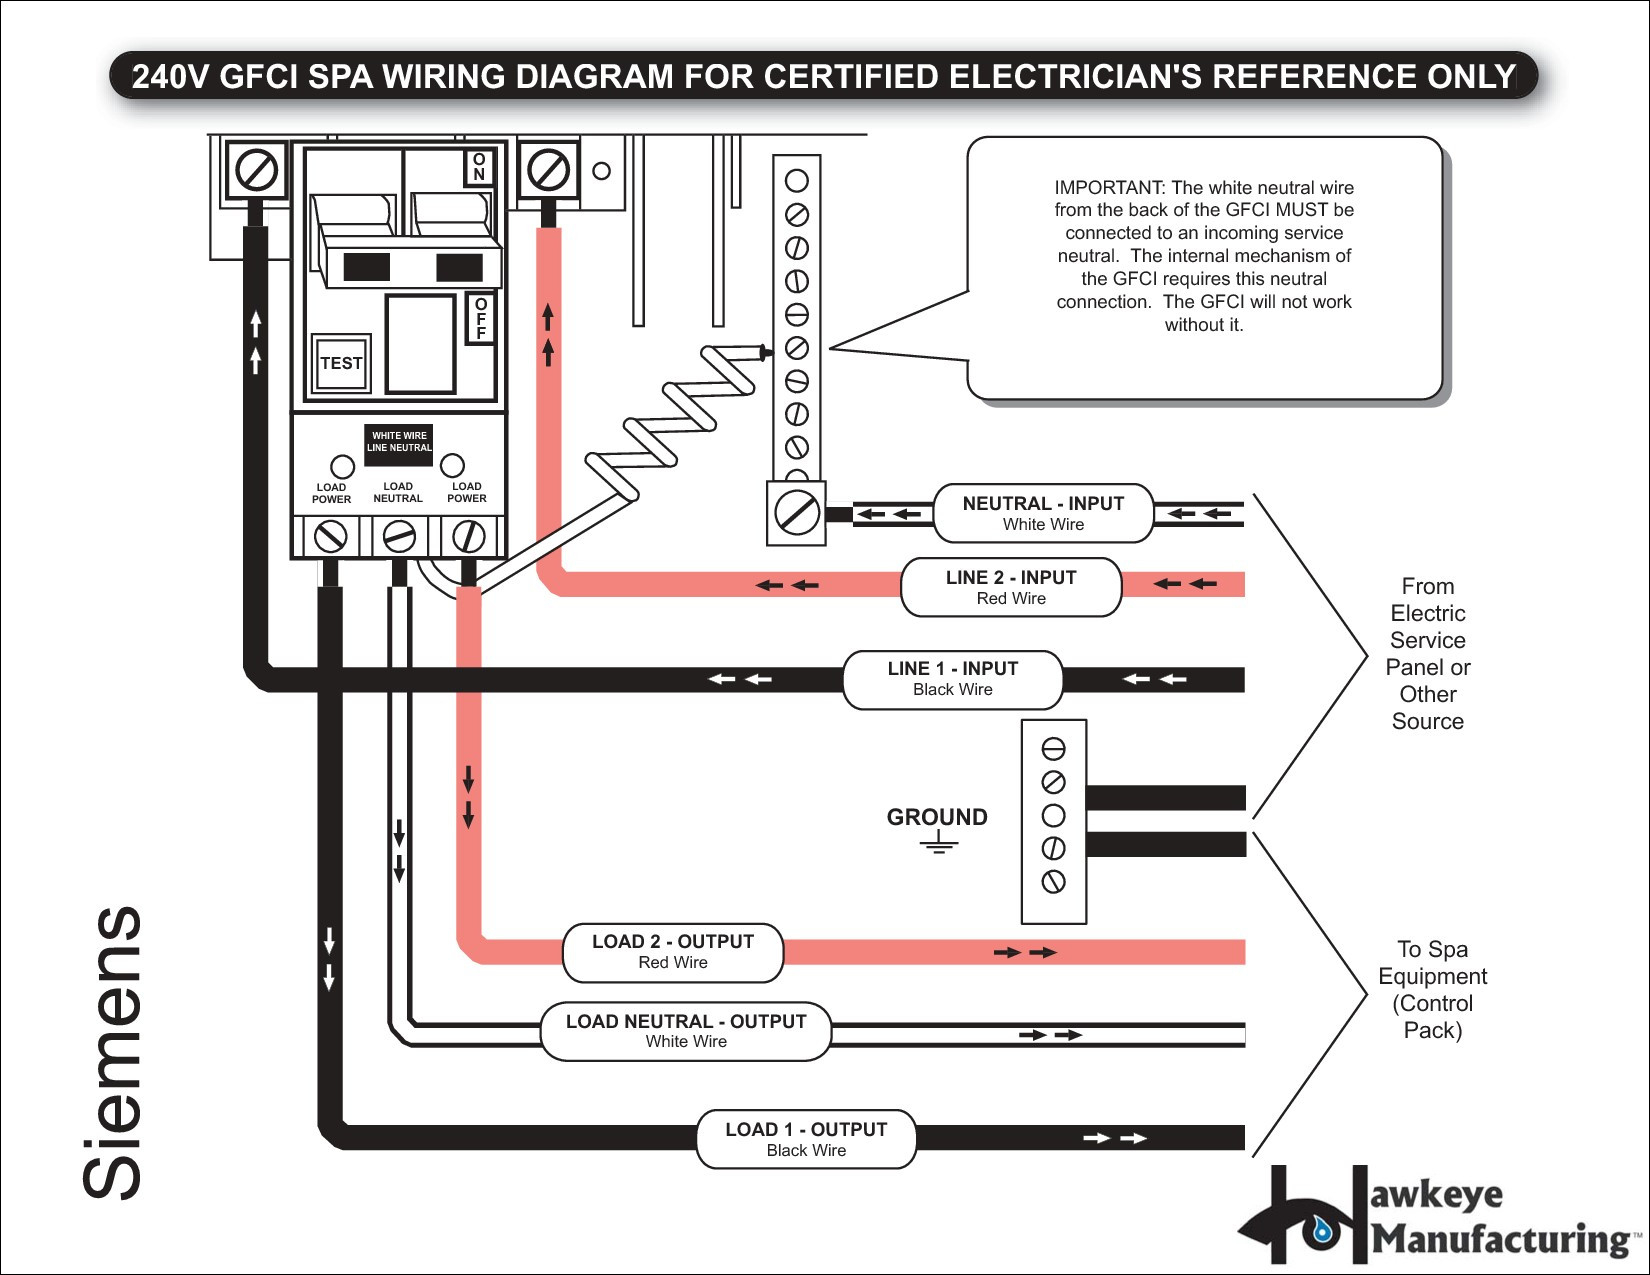 50 amp square d gfci breaker wiring diagram download. Black Bedroom Furniture Sets. Home Design Ideas